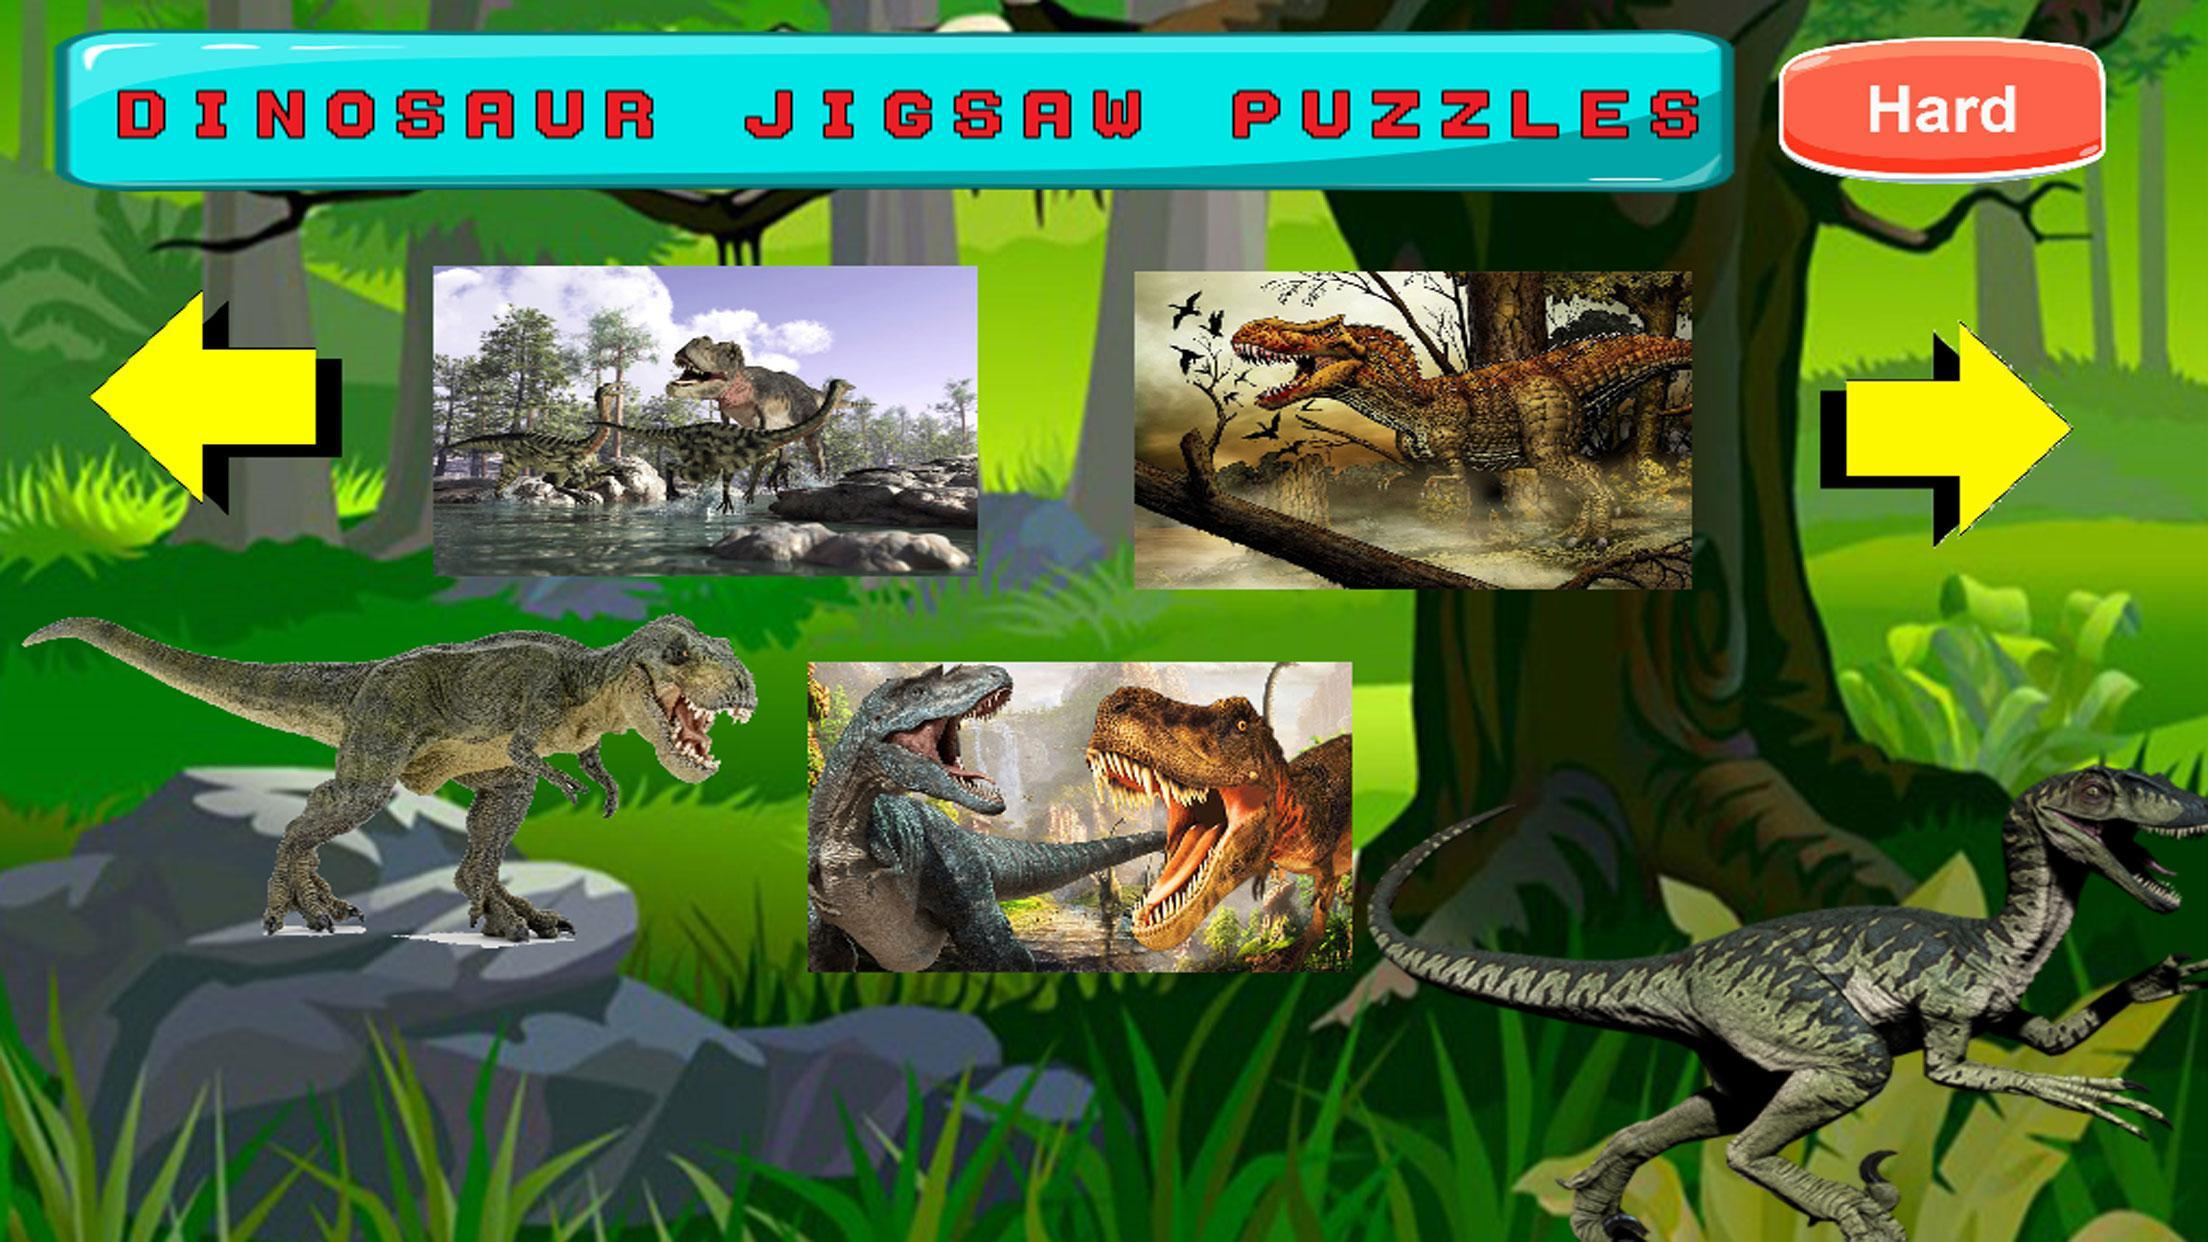 Dino Puzzle Kids Dinosaurs Puzzles Games For Android Apk Download